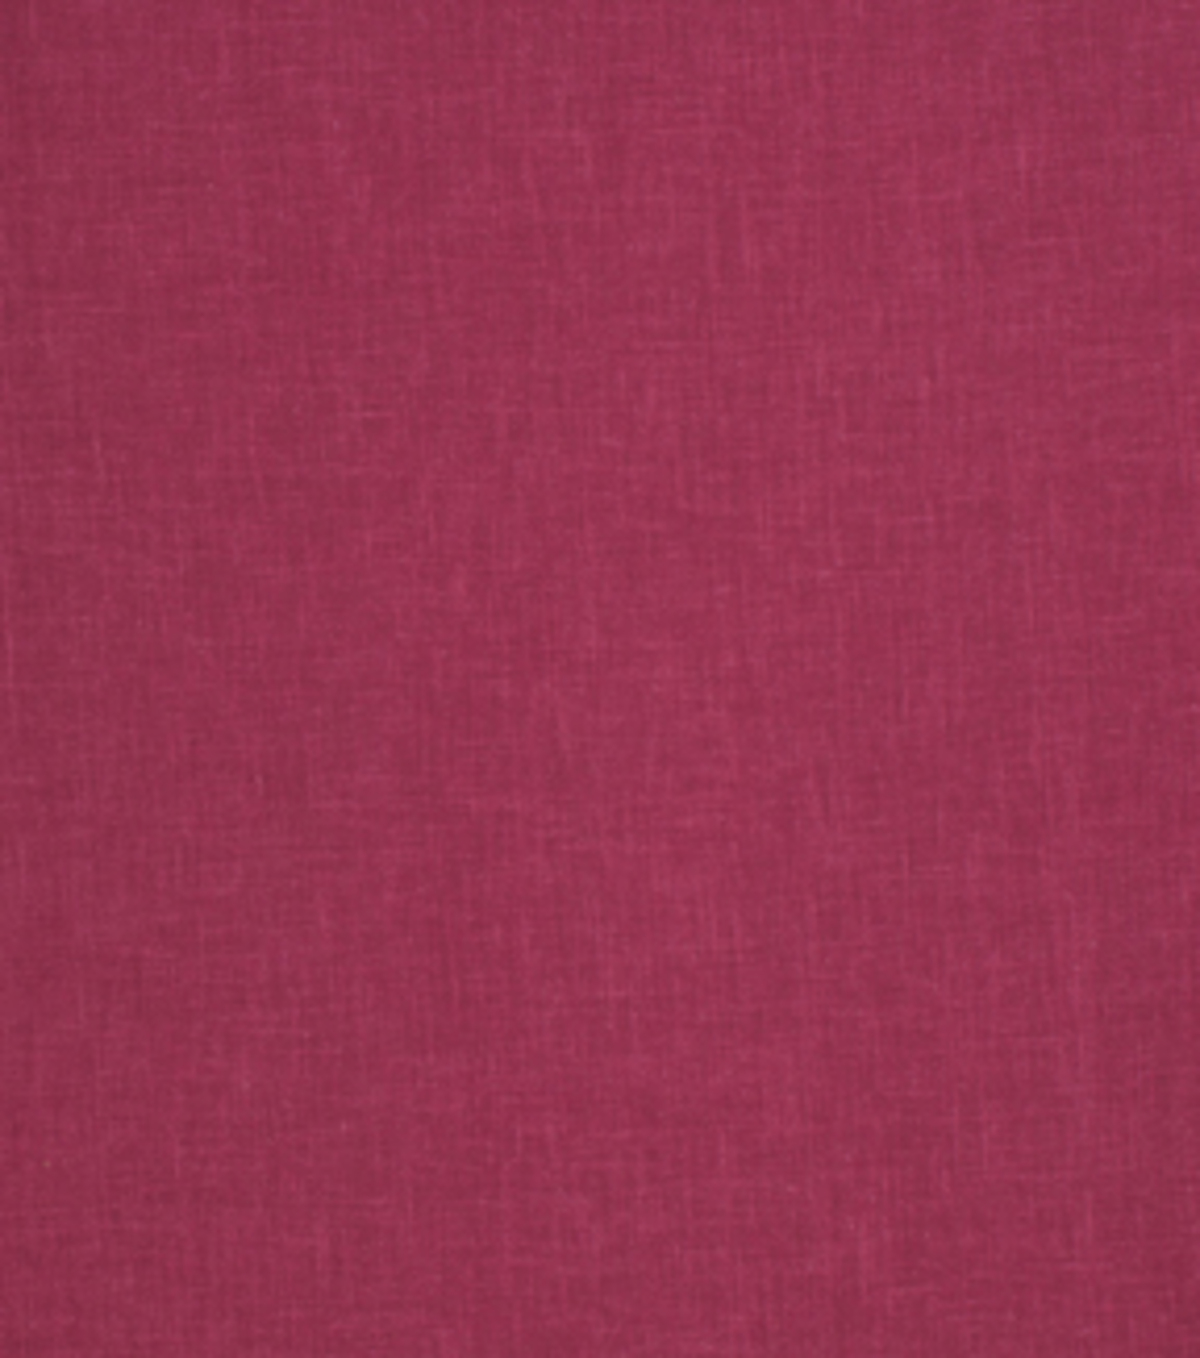 Home Decor 8\u0022x8\u0022 Fabric Swatch-Eaton Square Bannister Azalea